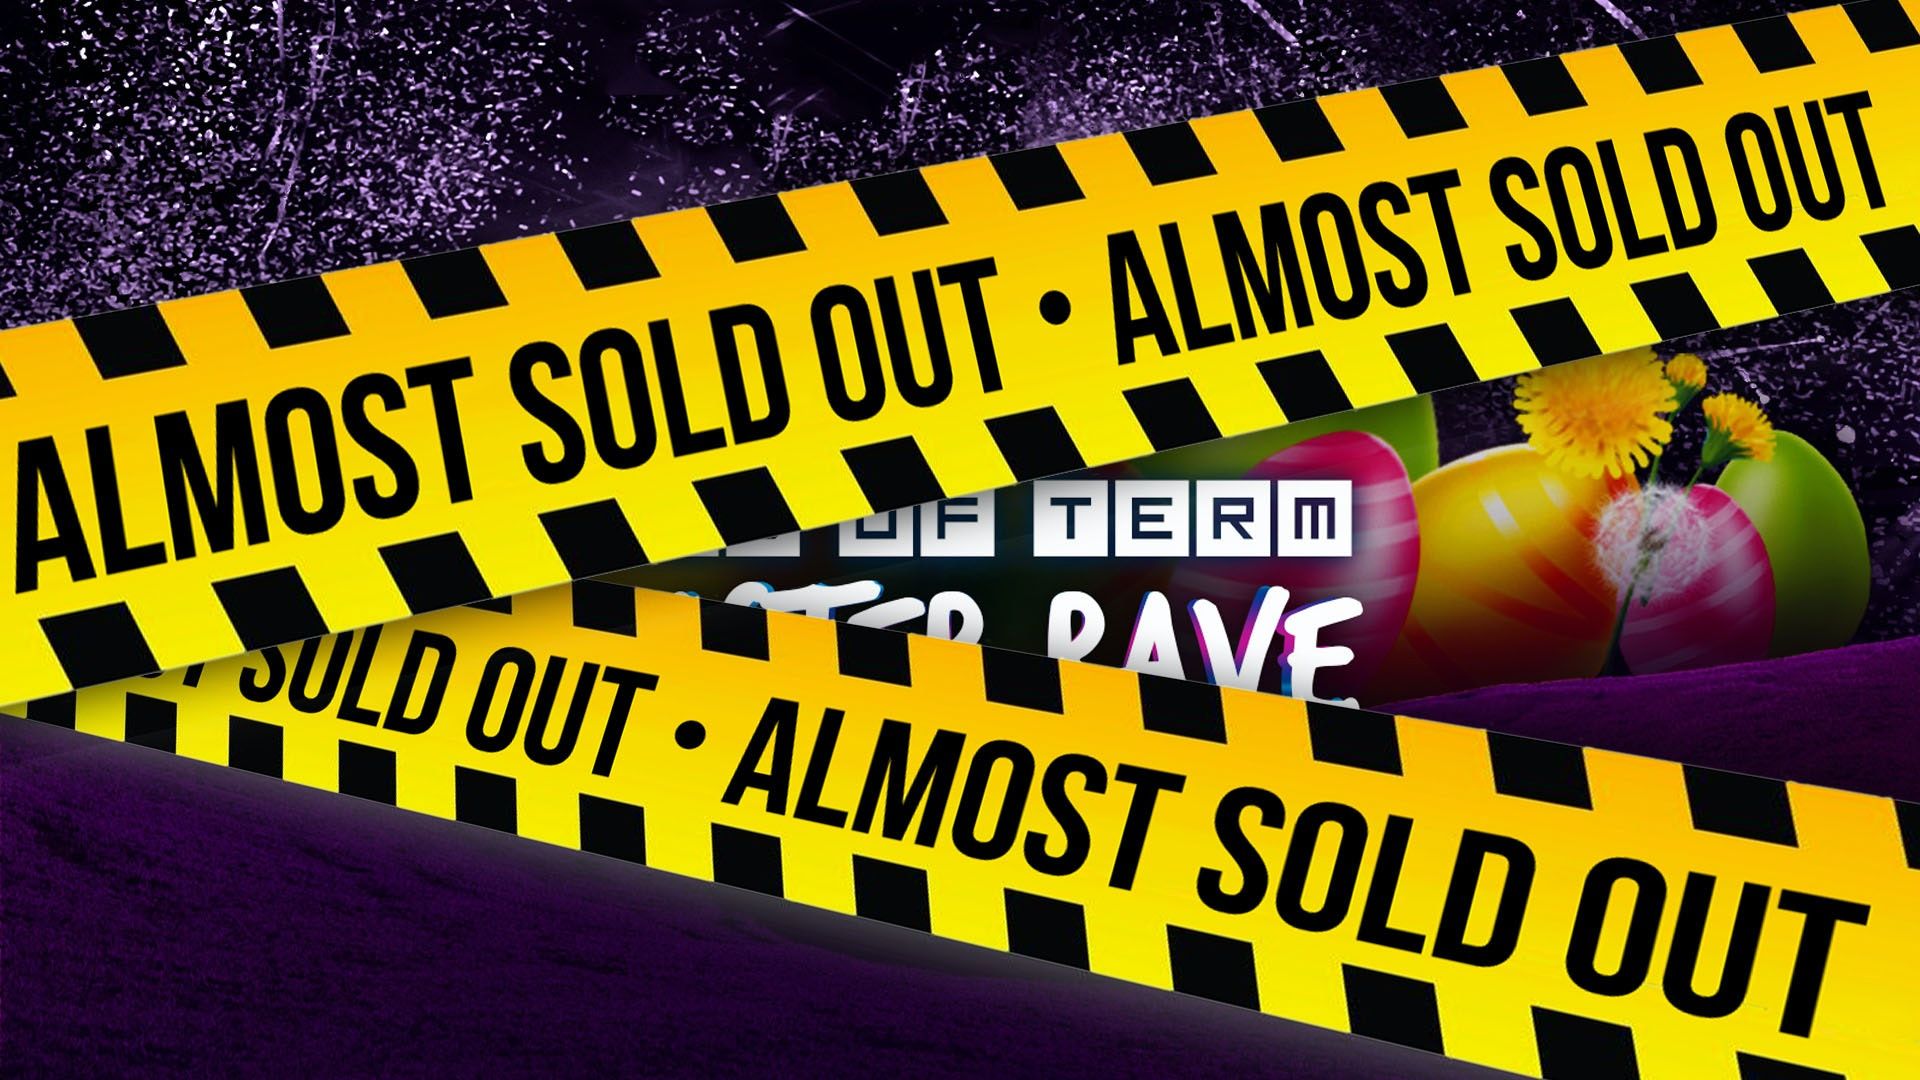 The End Of Term Easter Rave @ Fabric! /// First 300 Tickets SOLD OUT in 3 MINS! £5 & £6 TICKETS SOLD OUT! 75% SOLD OUT